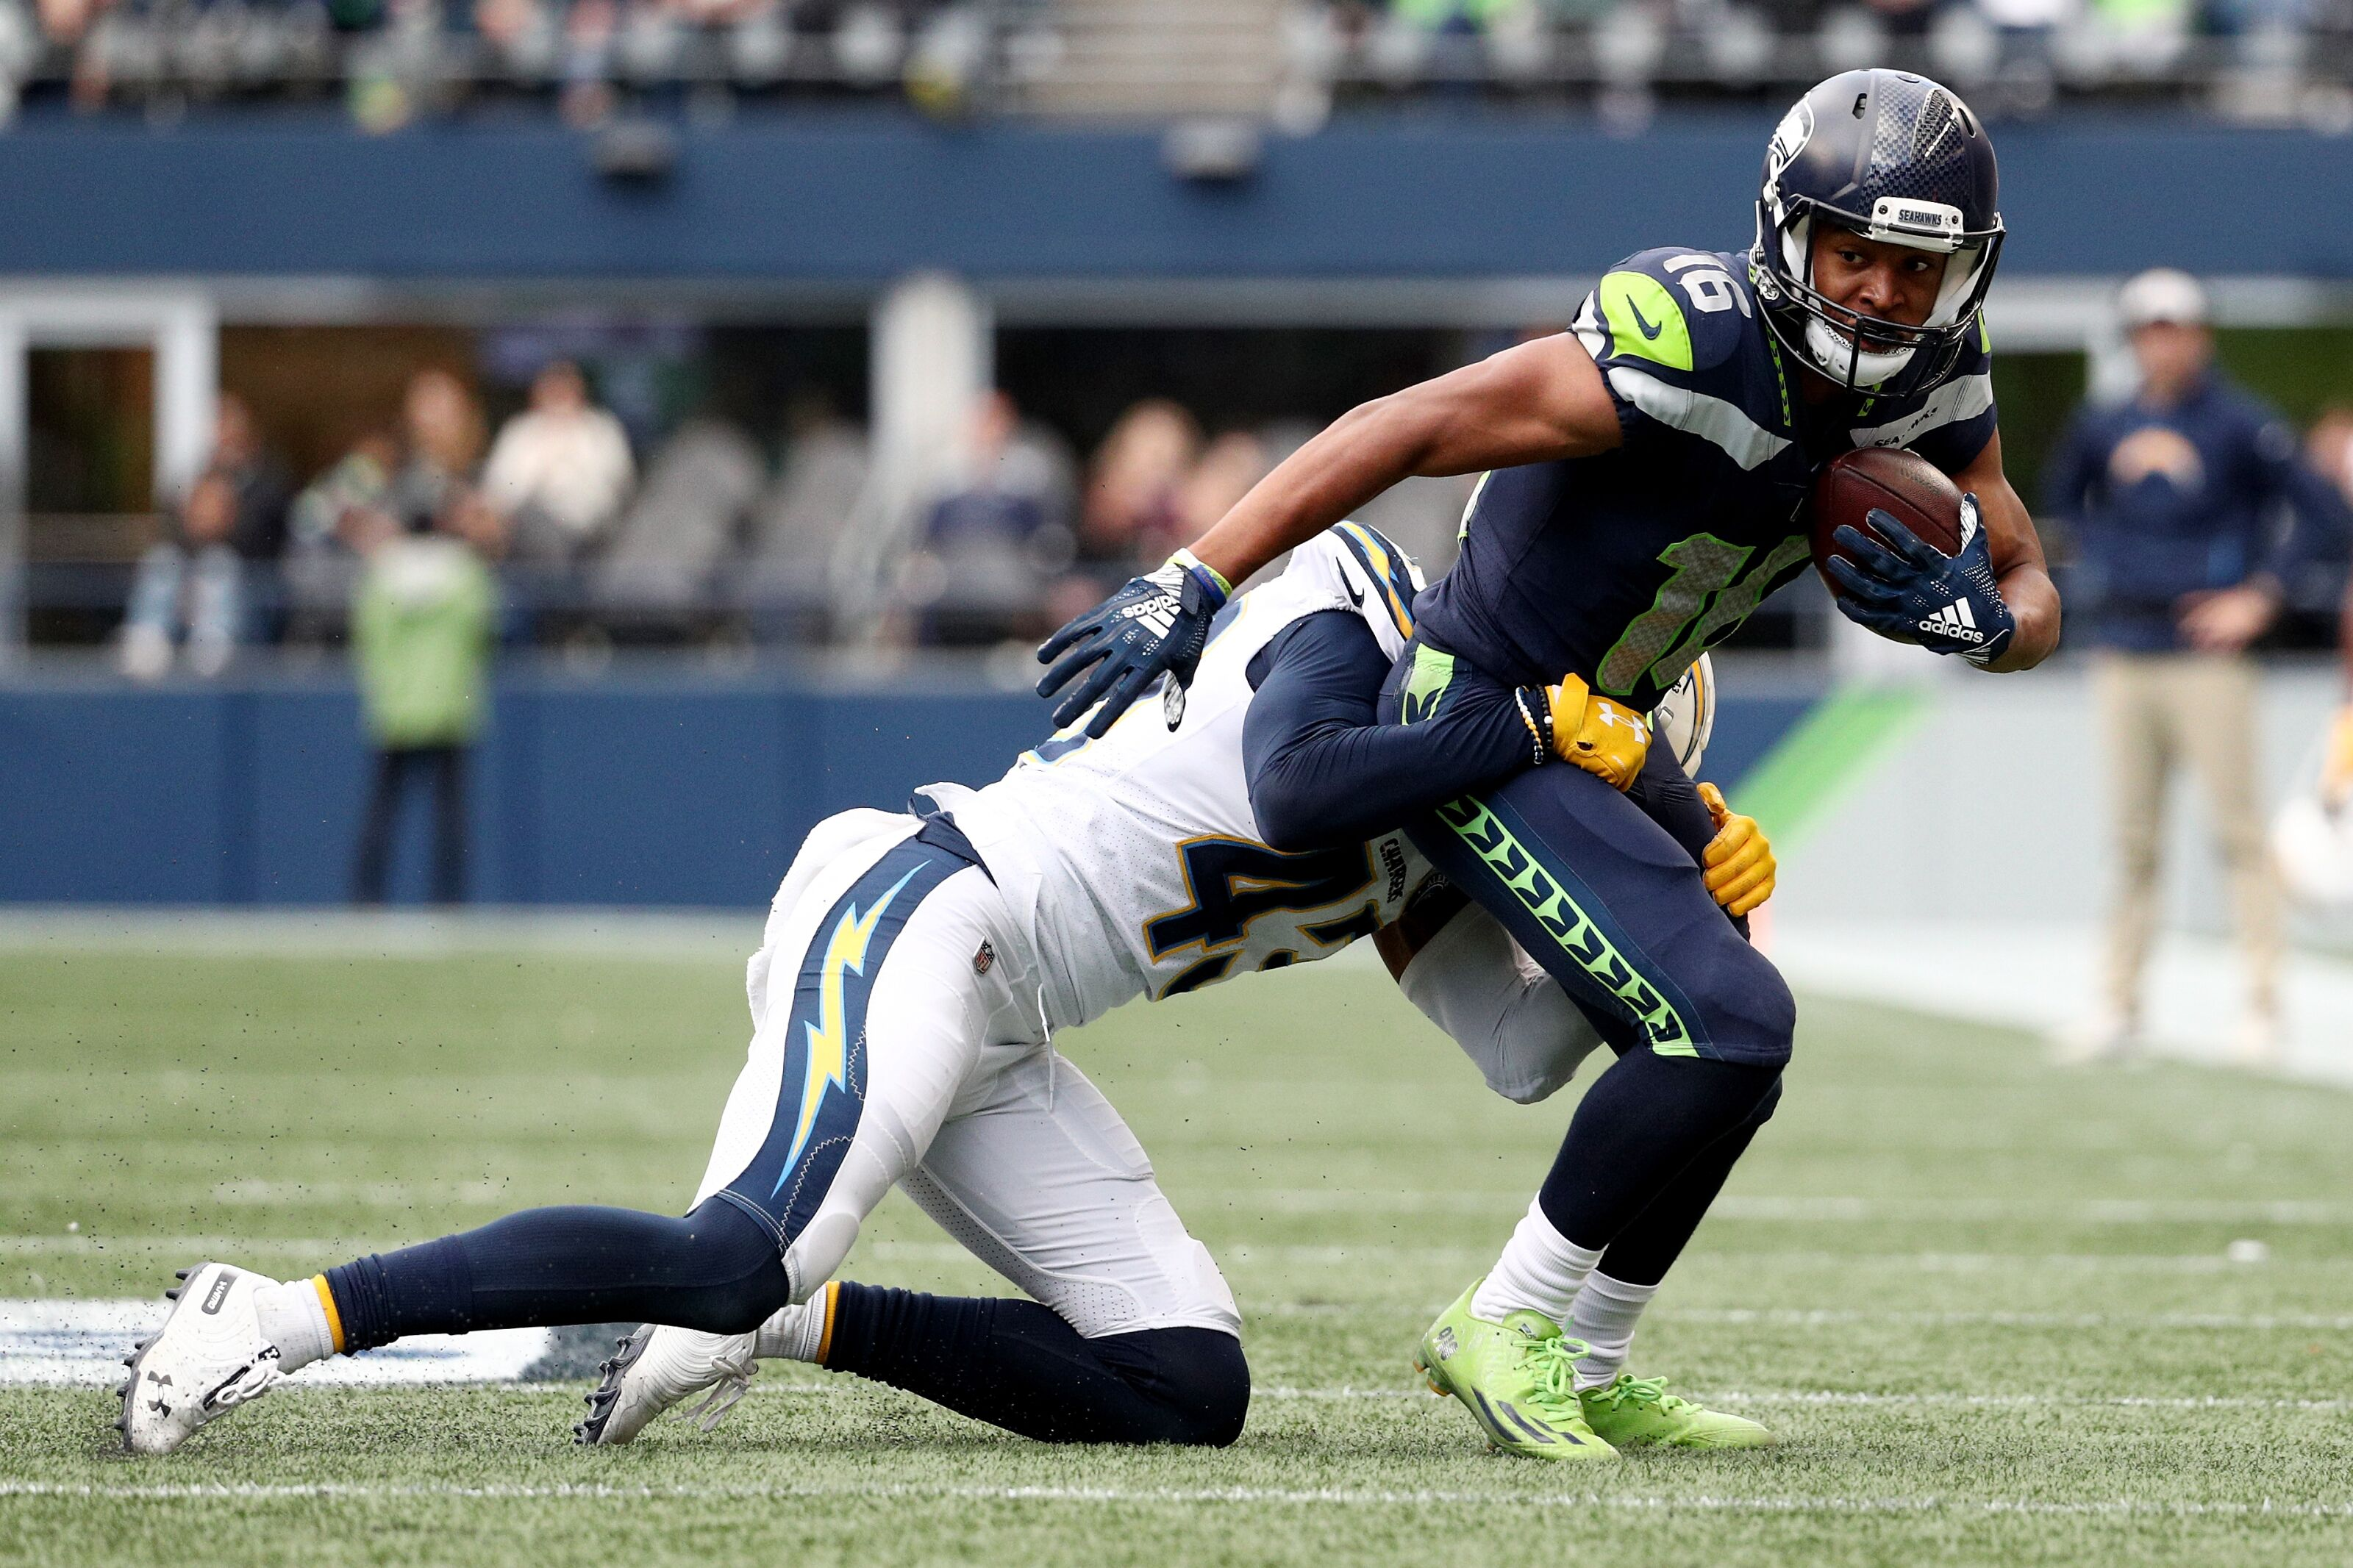 Seattle Seahawks  6 Takeaways from 25-17 loss to the Bolts - Page 2 301673a05